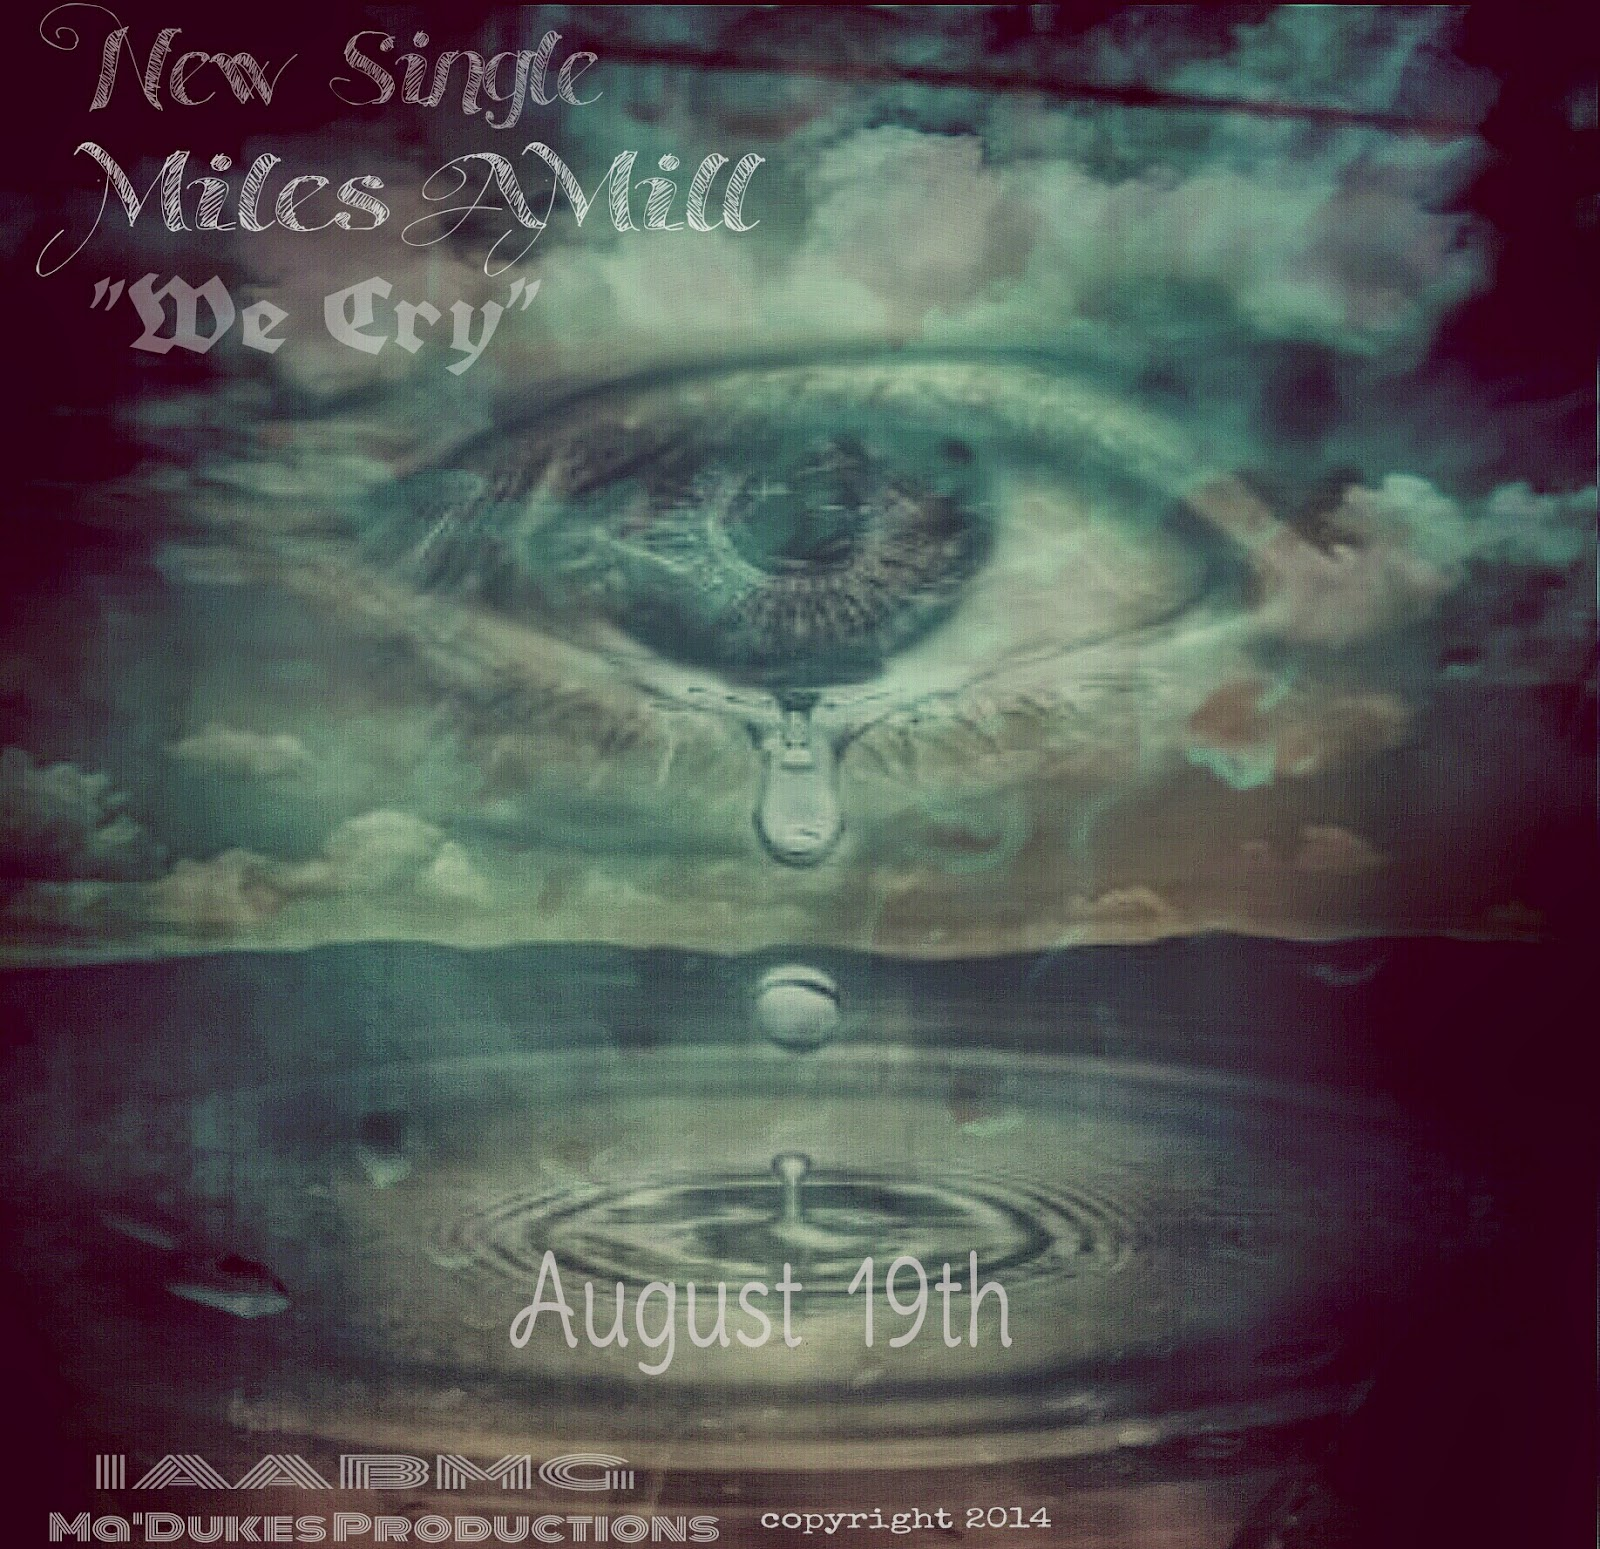 Miles AMill Cry cd cover promotional flyer image